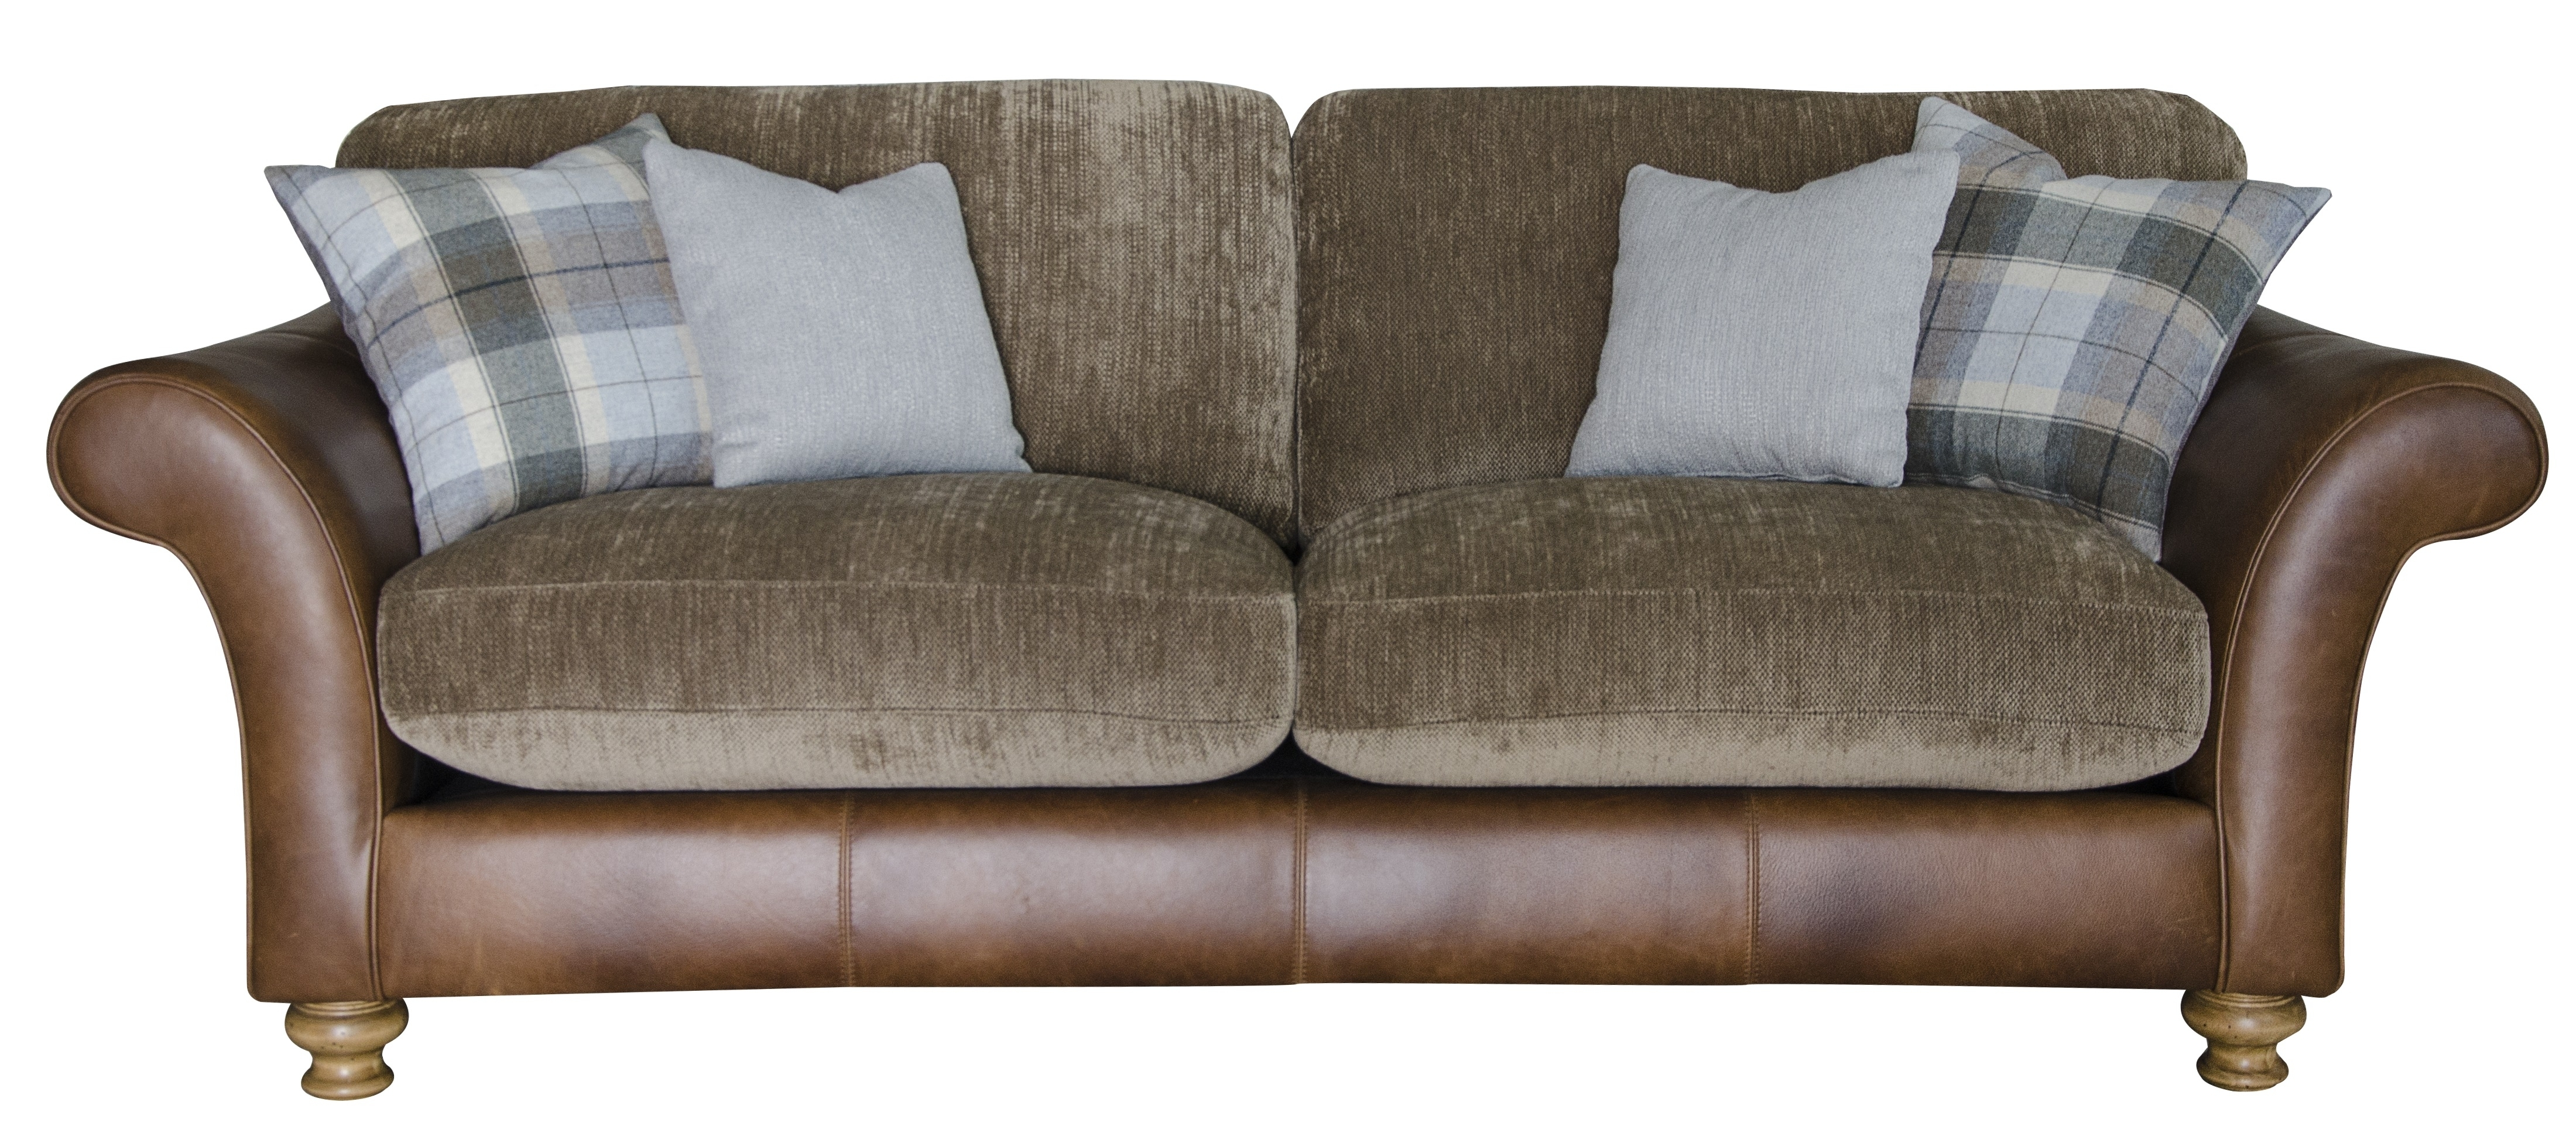 Leather And Fabric Combination Sofas Sofa Regarding Idea 4 With Regard To Leather And Cloth Sofas (View 5 of 10)